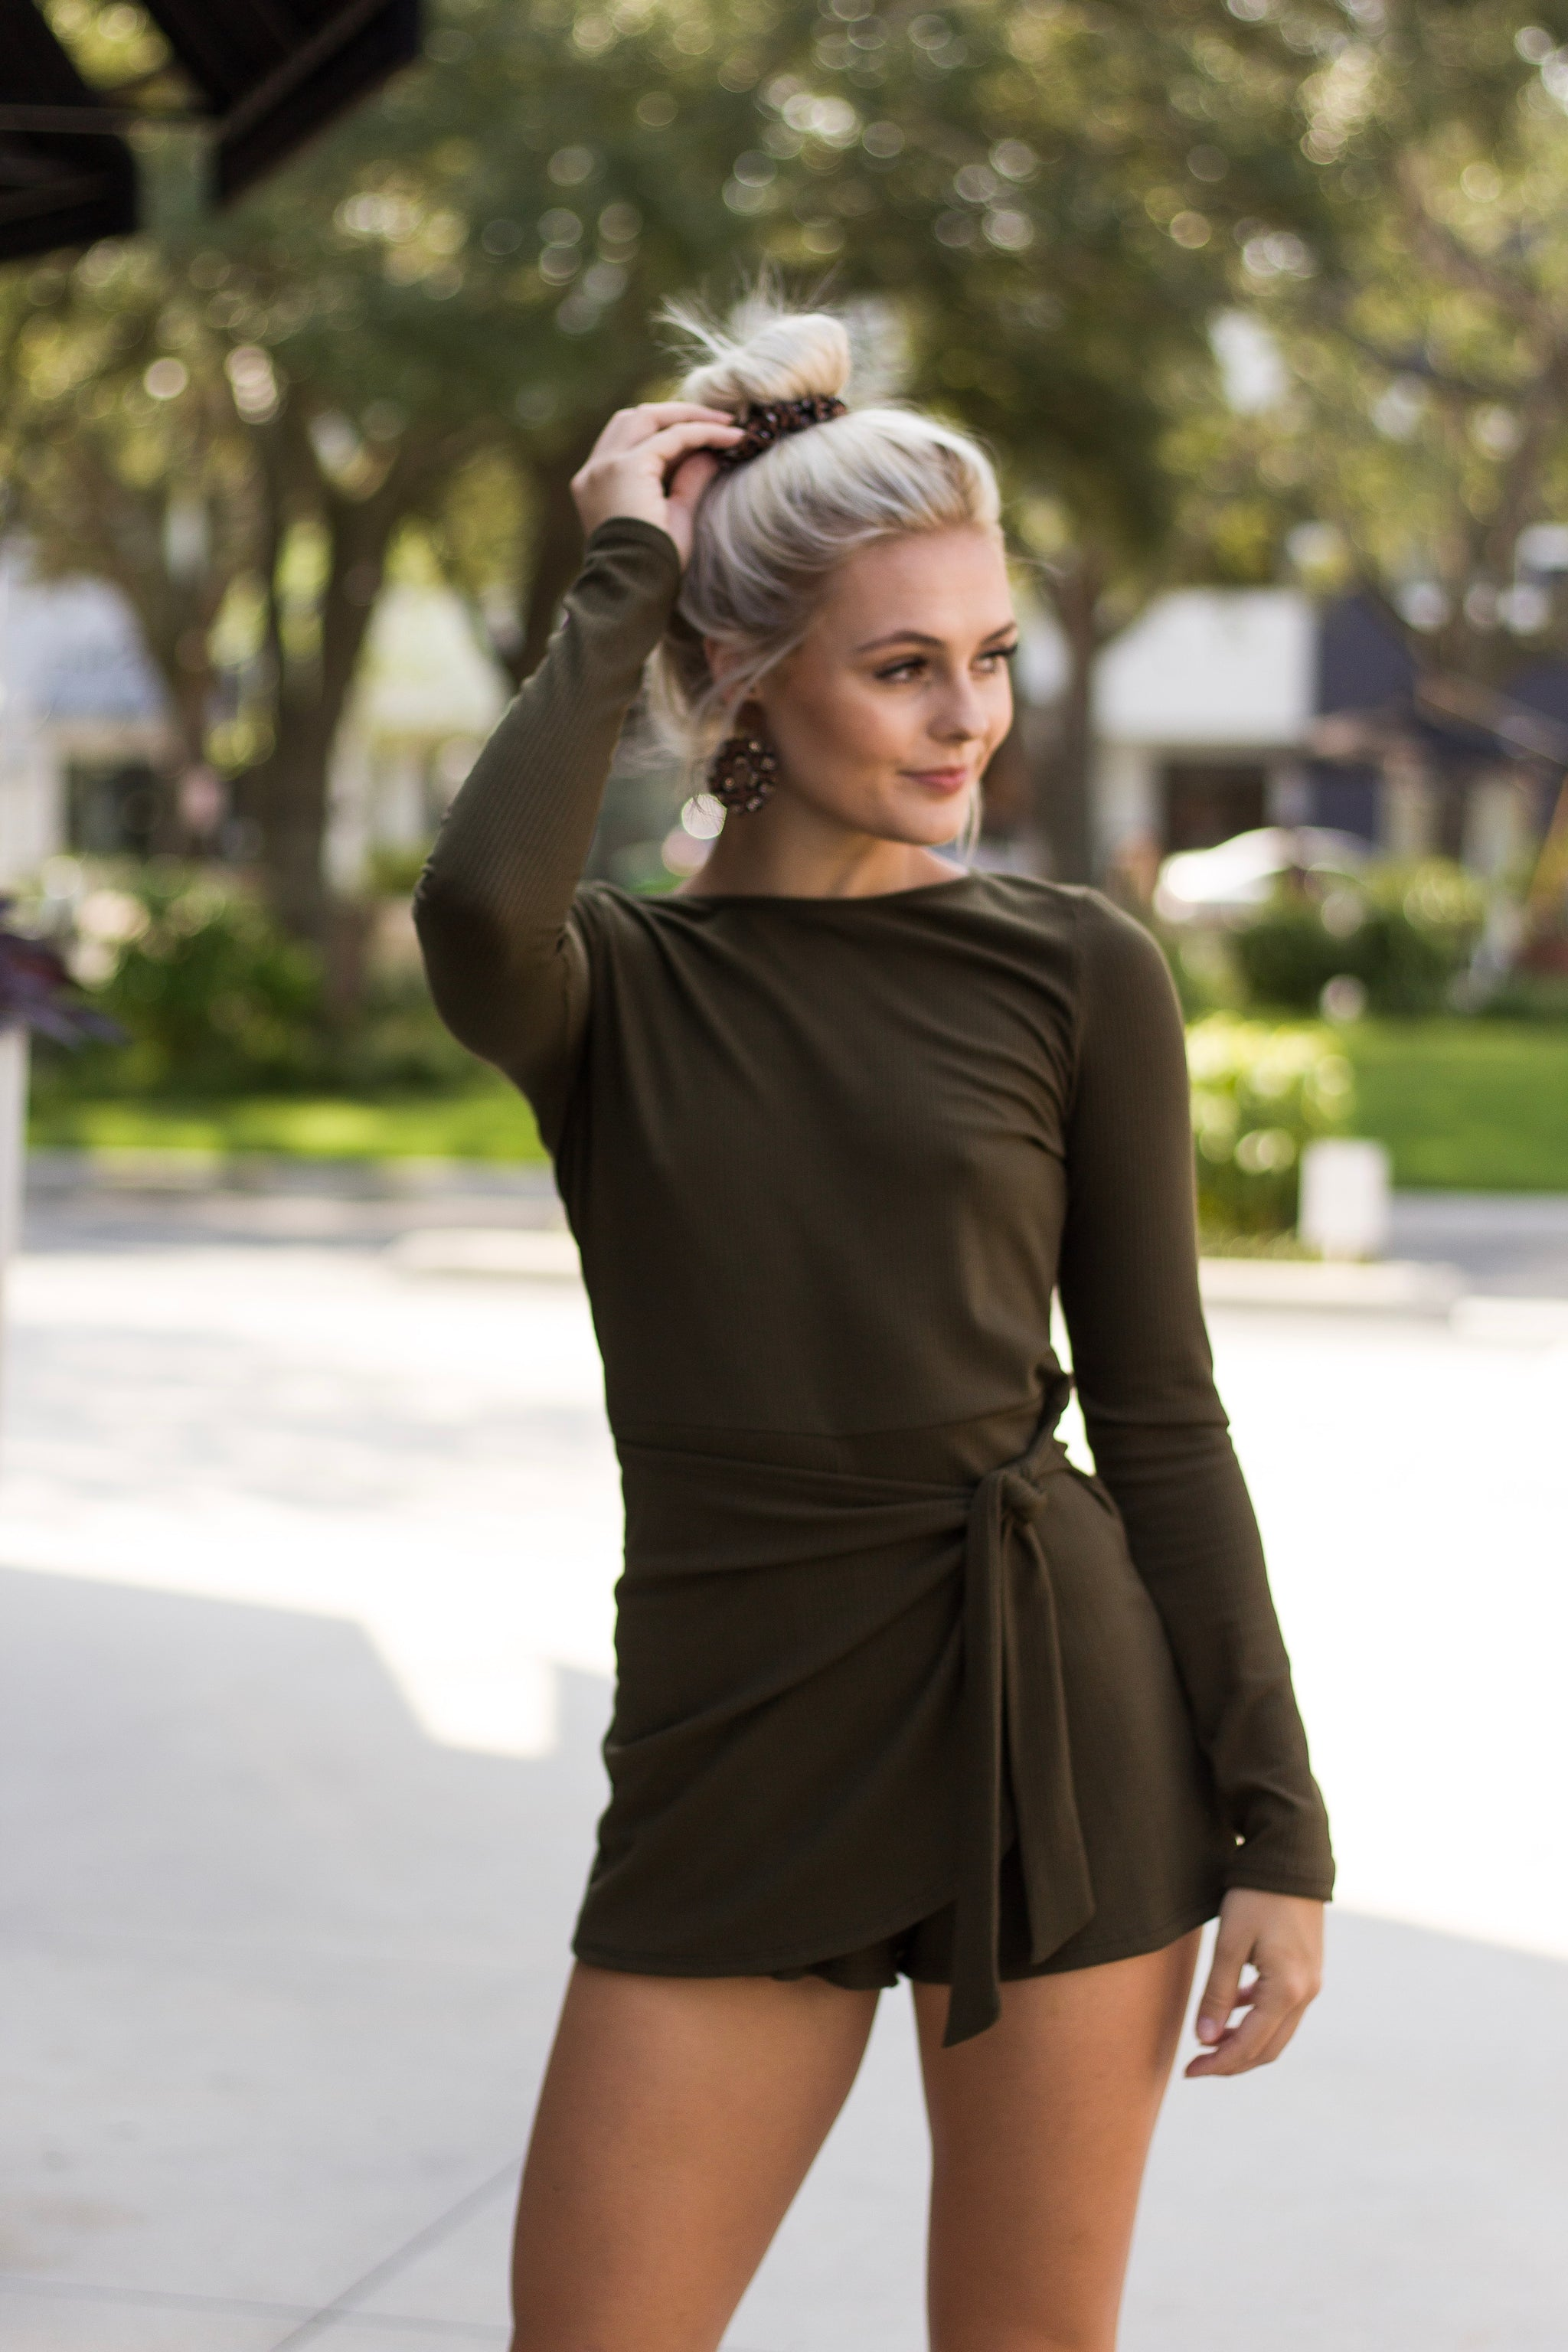 This long-sleeved ribbed romper has a u-neckline and a fitted knit bodice that leads to fitted shorts that has a skirt flap panel that ties at the side.